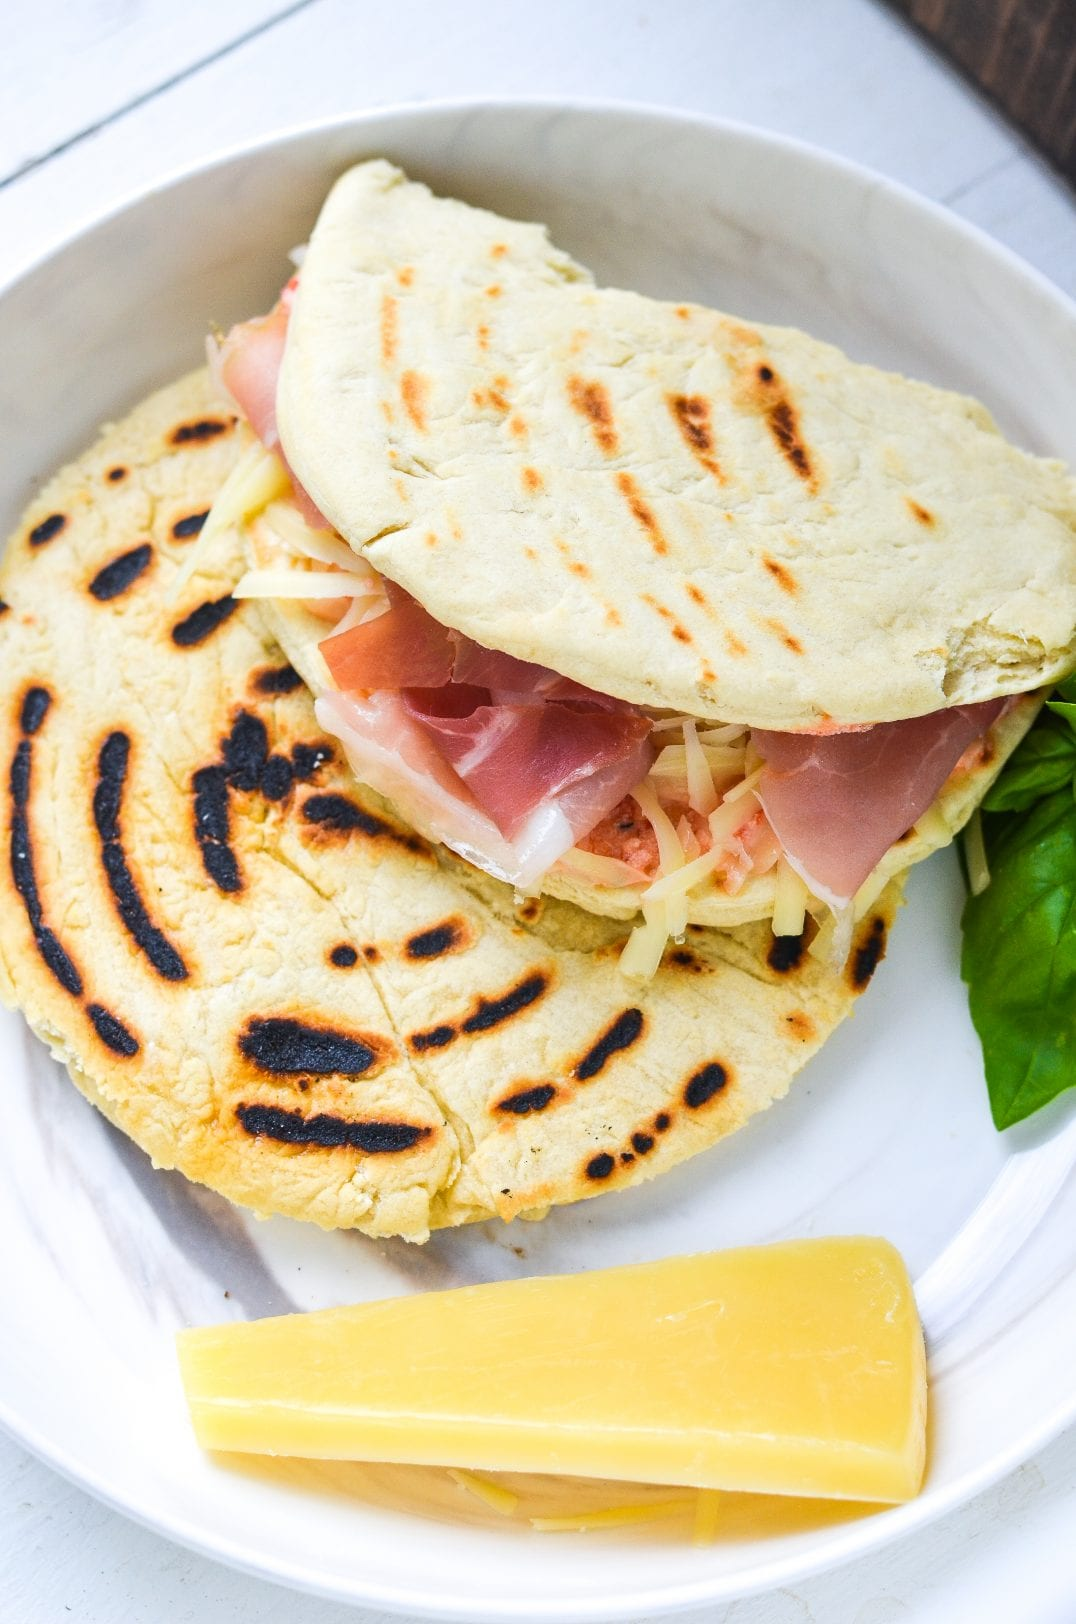 Cheesy Italian Piadina with Prosciutto and Roasted Red Pepper